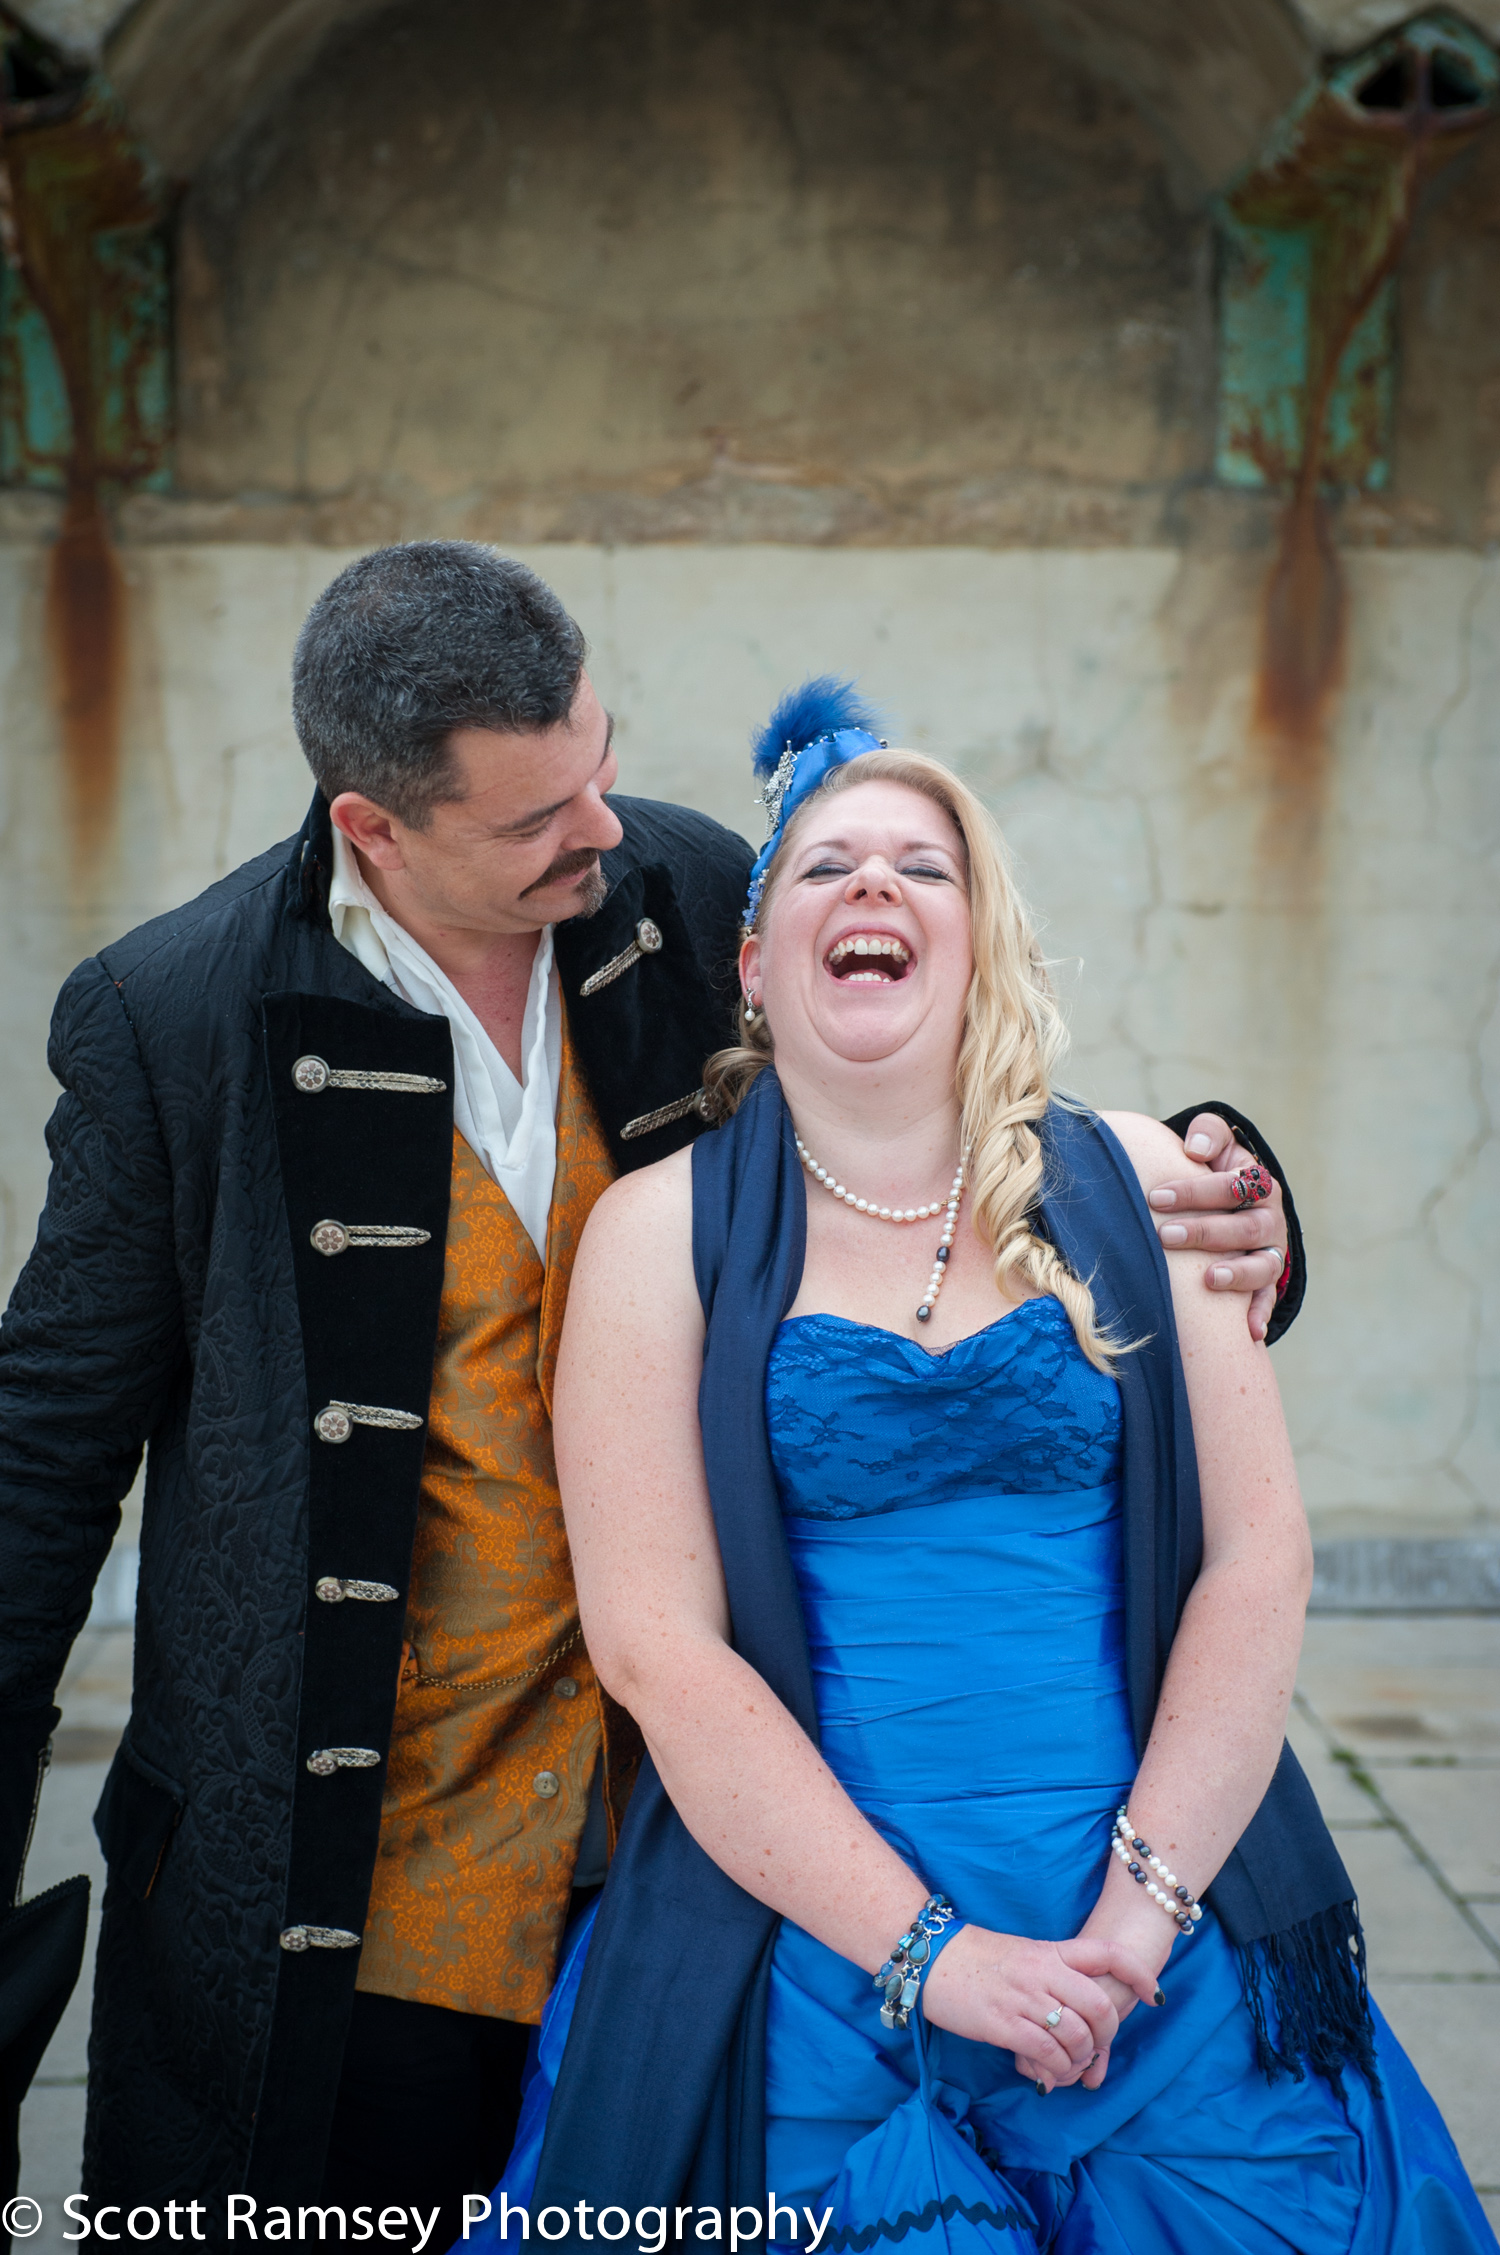 Brighton-Wedding-Photography-Pirate-Theme-Bride-Laughing-140913-